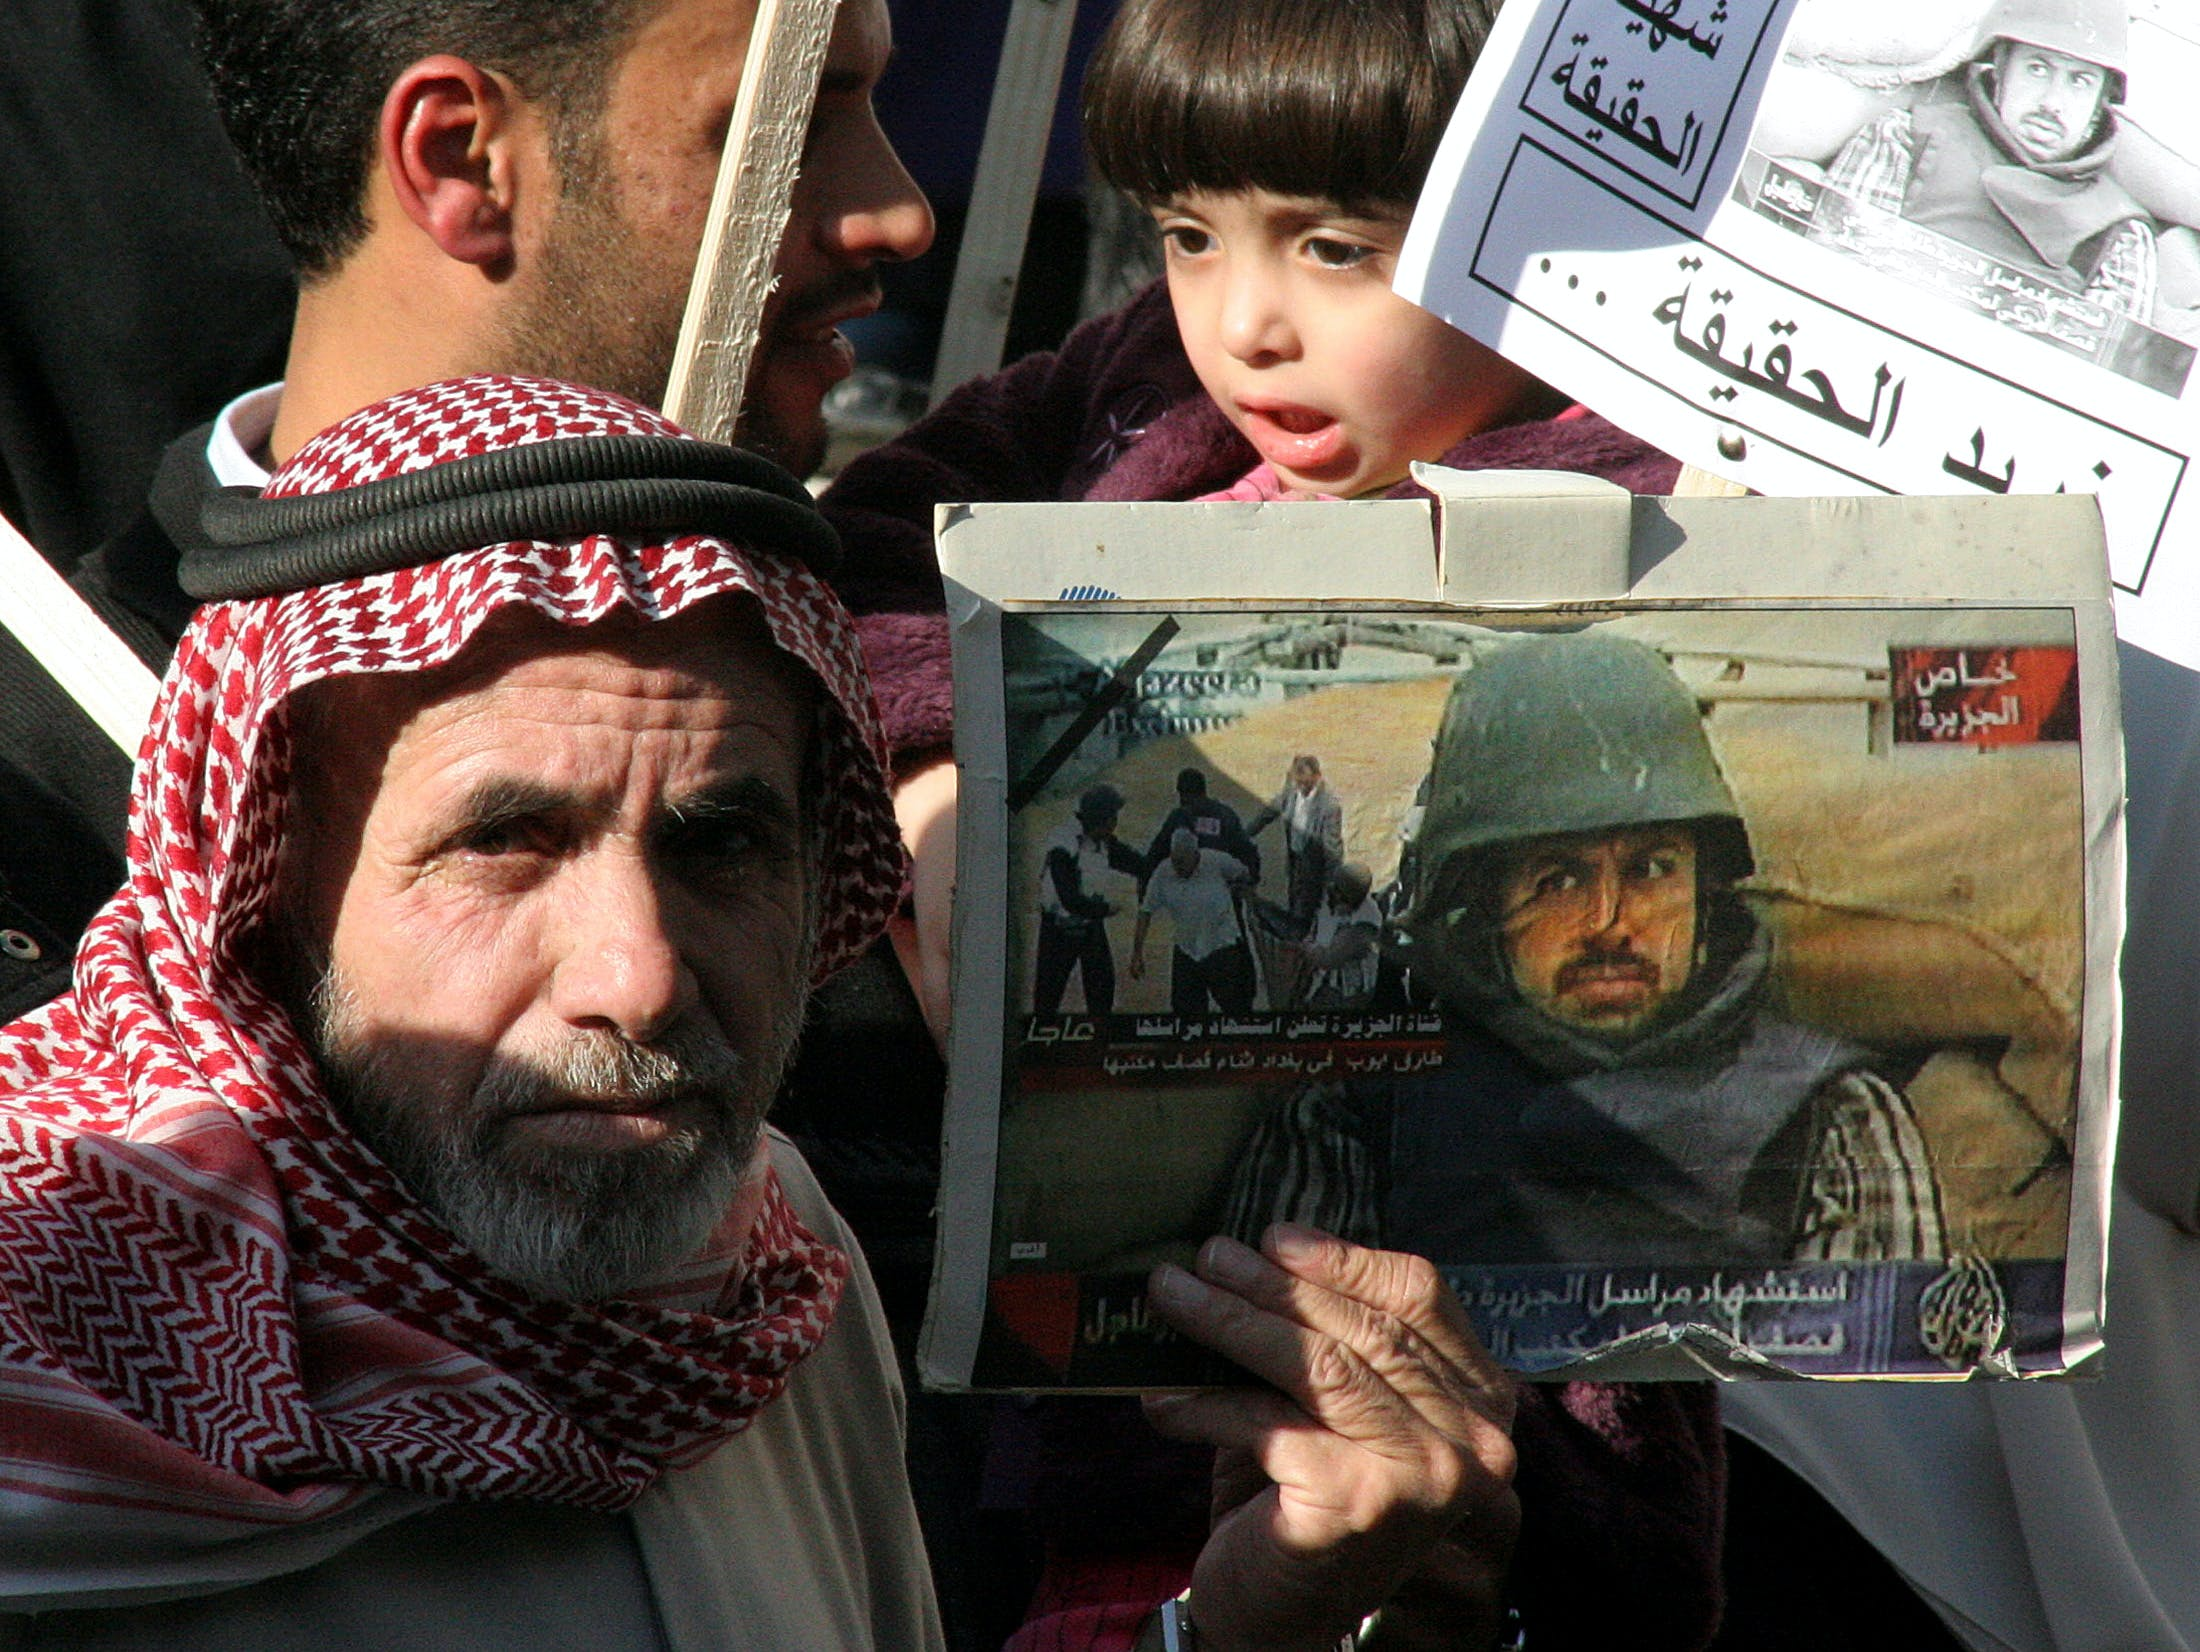 Fatima Ayyoub (top R), 4, daughter of Jordanian Al Jazeera correspondent Tareq Ayyoub, is seen next to pictures of her father with Naeem Ayoub (L), father of Tareq Ayyoub, during a protest outside the Al Jazeera office in Amman Novmber 24, 2005. Ayyoub was a victim of a missile attack that hit the Al Jazeera bureau in Baghdad on April 8, 2003. Britain has warned media organisations they are breaking the law if they publish details of a leaked document said to show U.S. President George W. Bush wanted to bomb Arabic television station Al Jazeera. REUTERS/Majed Jaber - RP2DSFHMGFAD